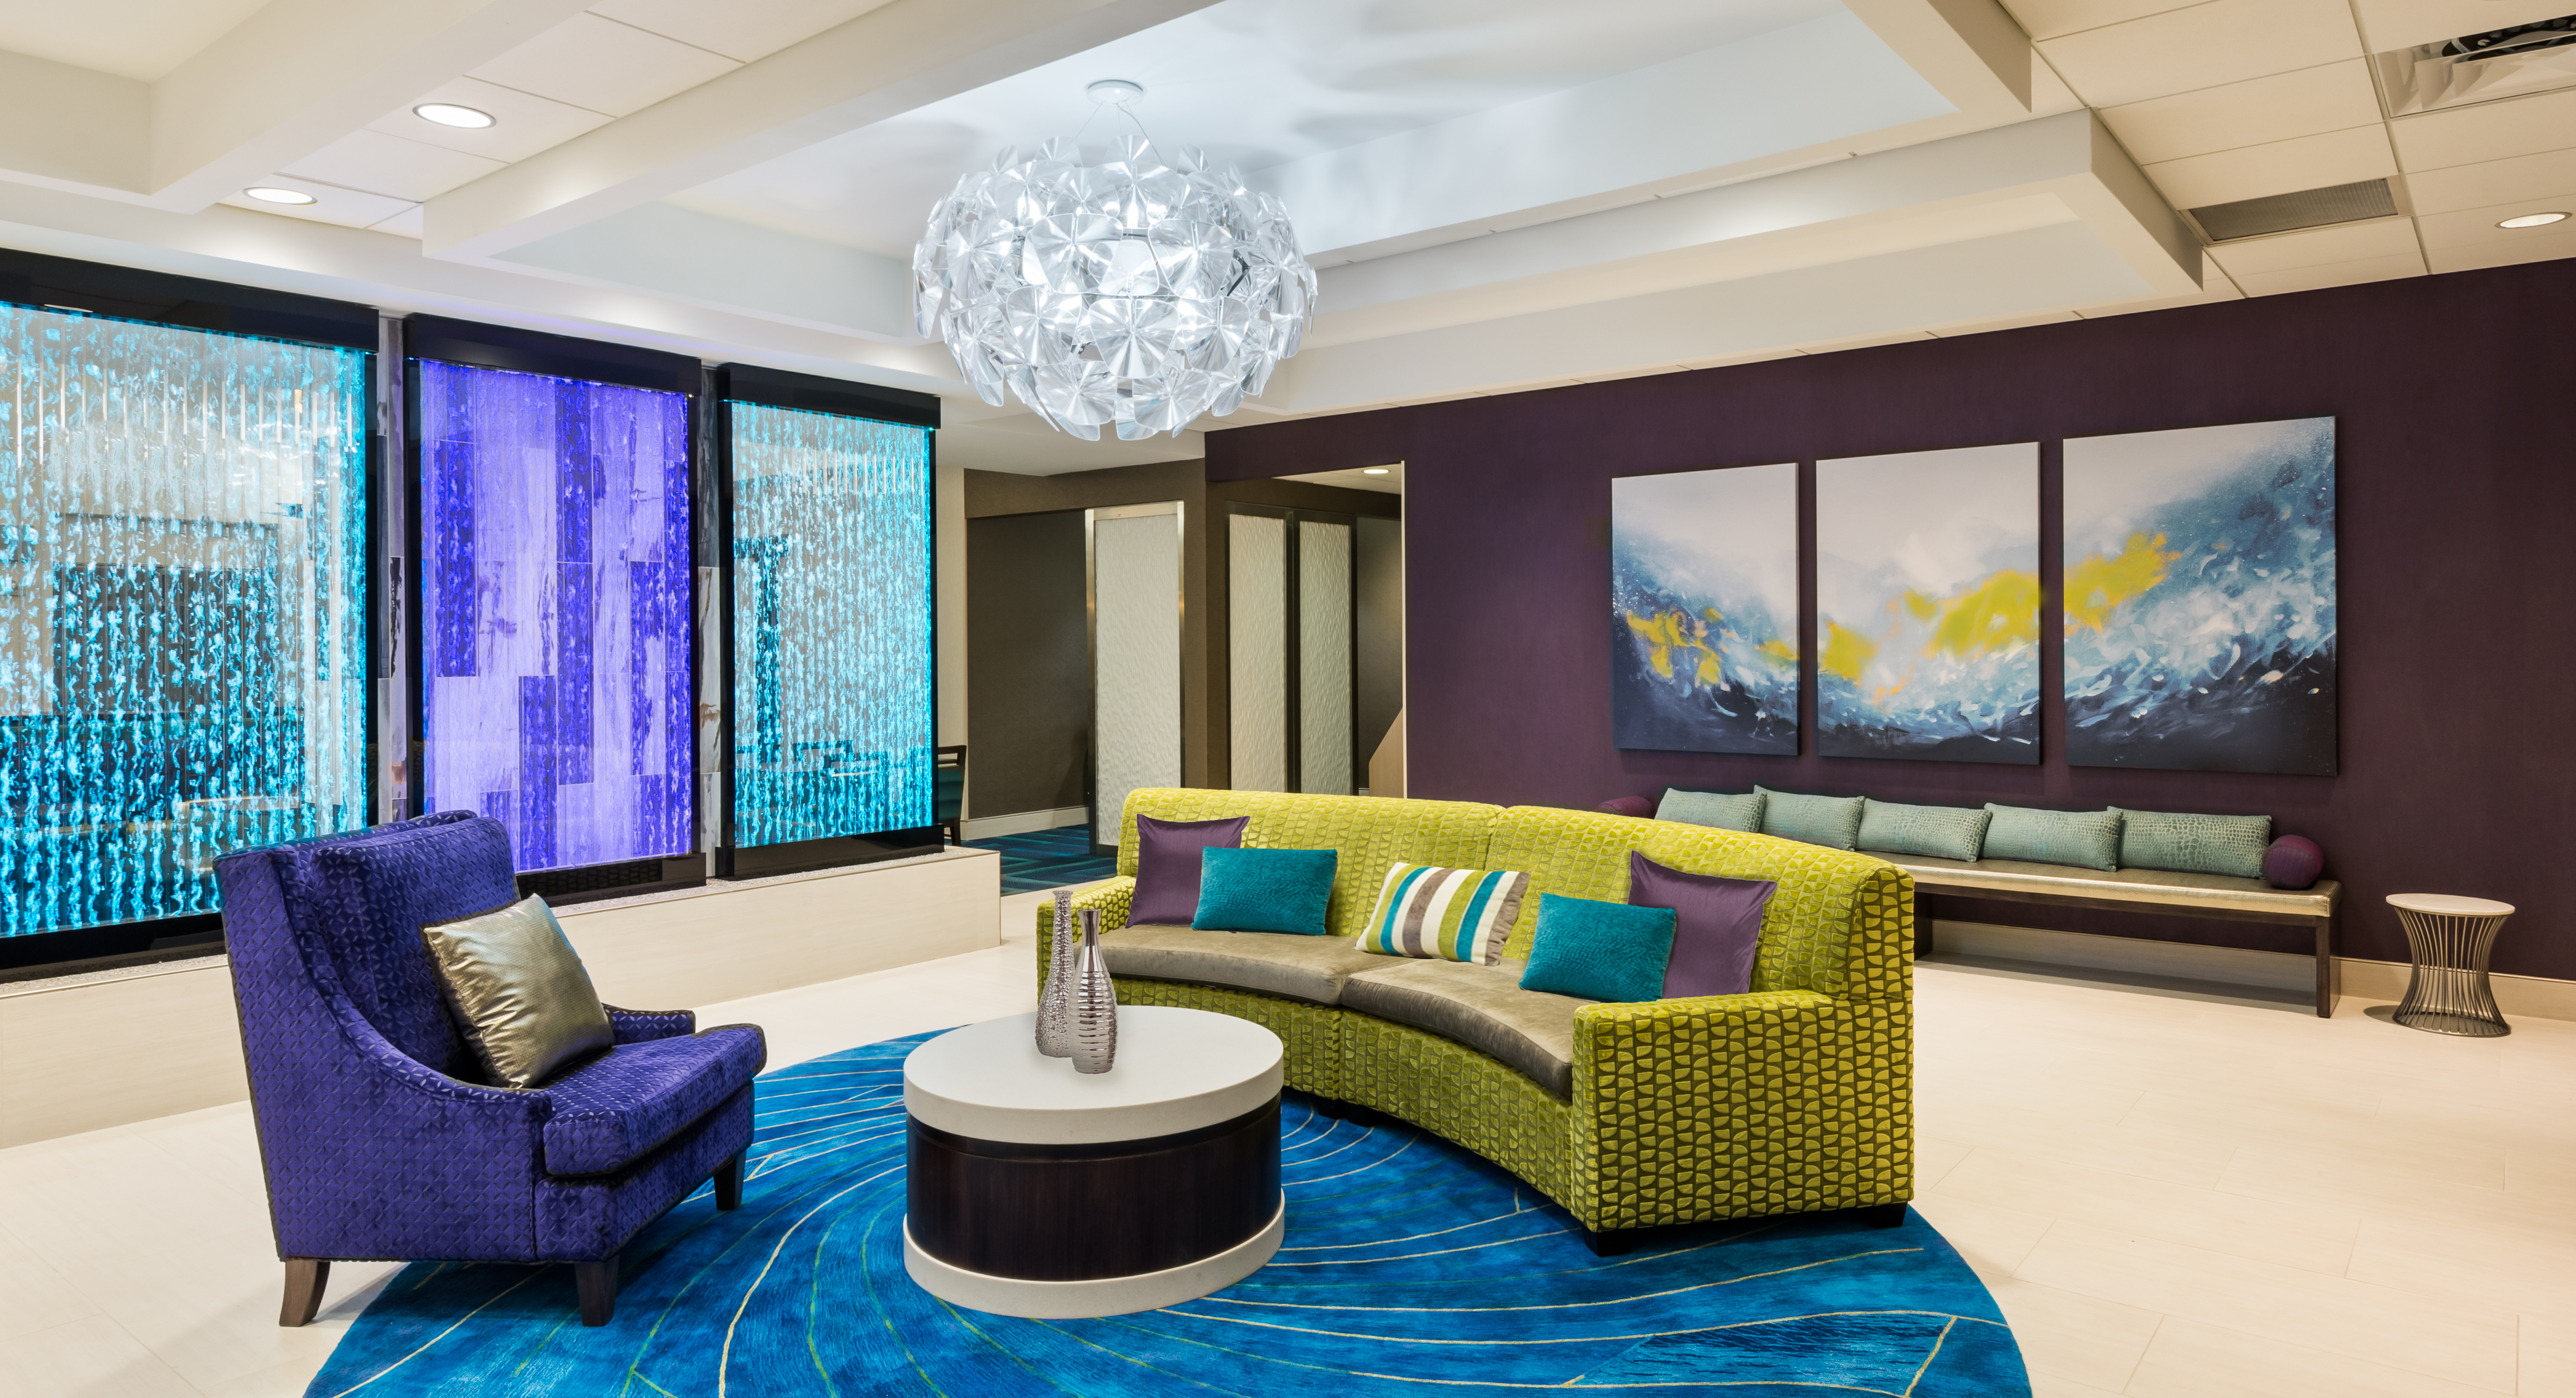 Ordinaire ... A Premier Interior Hospitality Design Firm, Today Announced The  Completion Of The Homewood Suites By Hilton, Orlando For Buffalo Lodging  Associates.